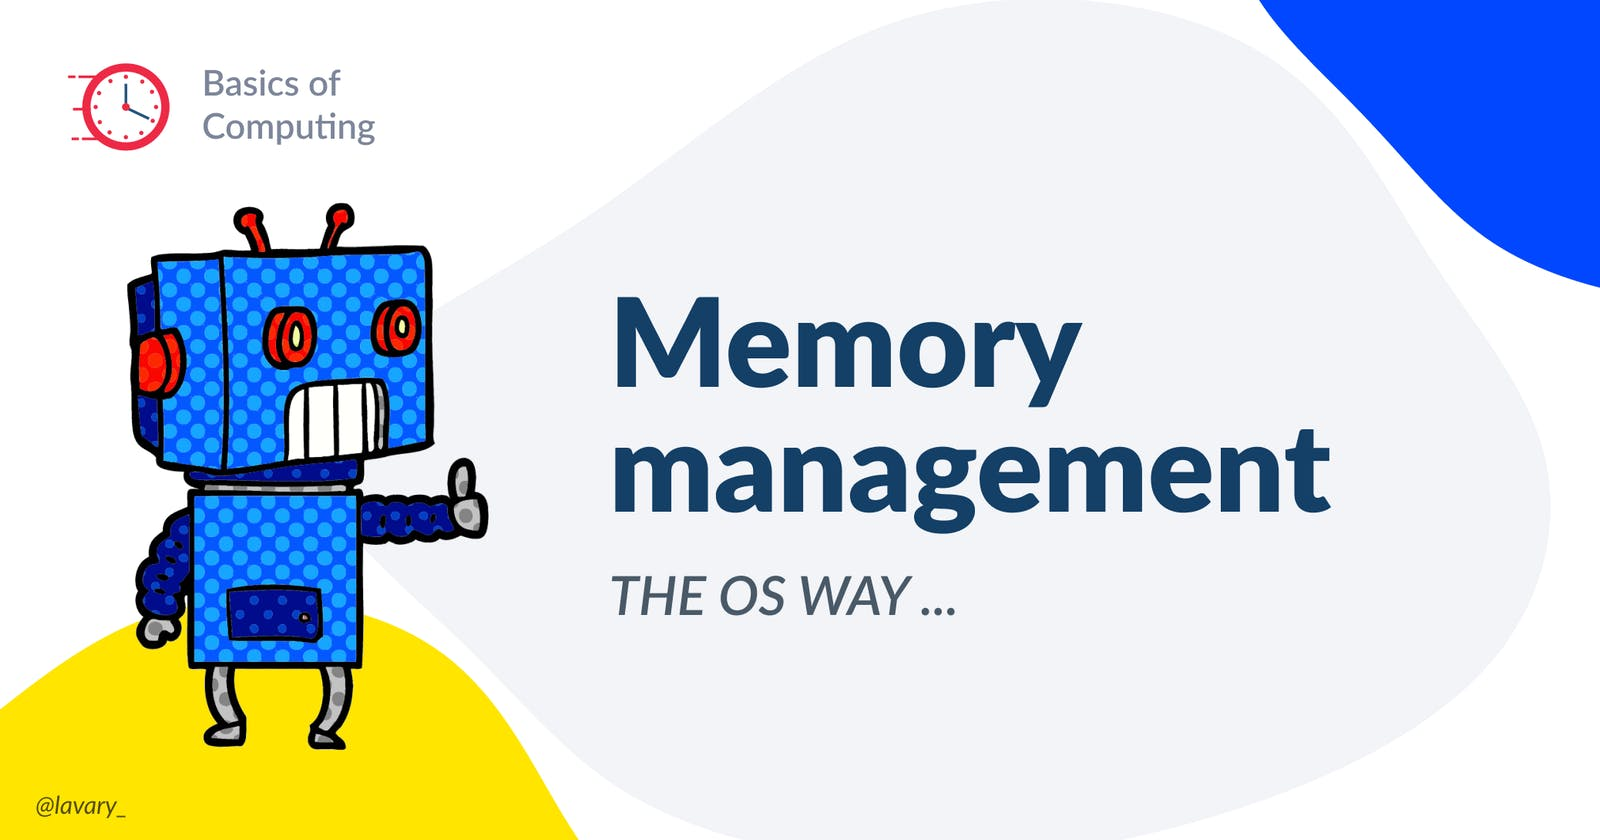 Memory management in the OS way